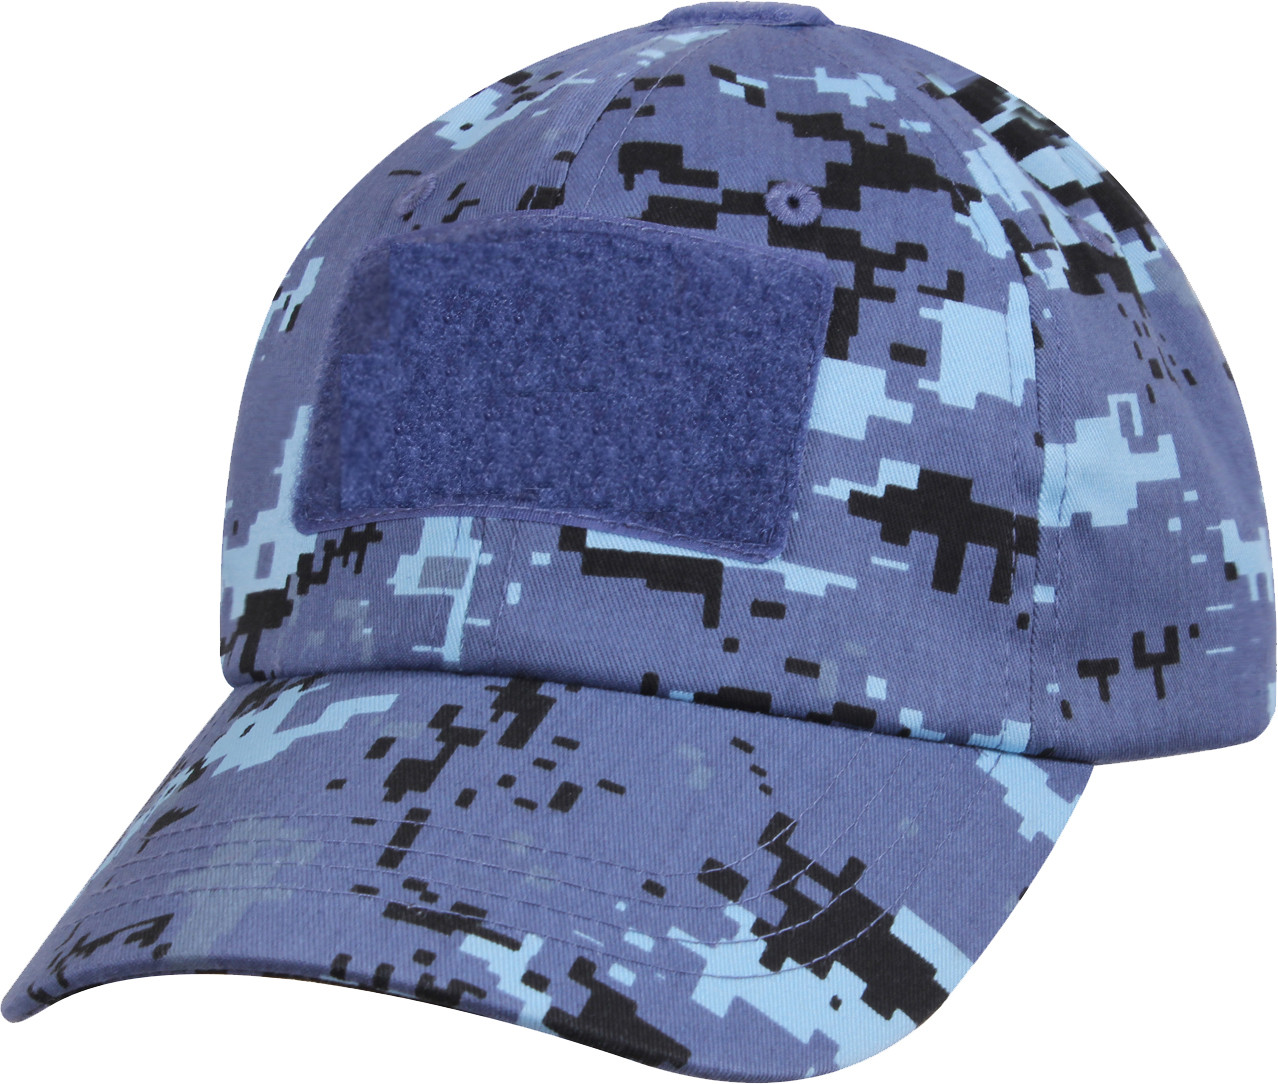 More Views. Sky Blue Digital Camouflage Tactical Military Baseball Operator  Cap 23bb3c213a0